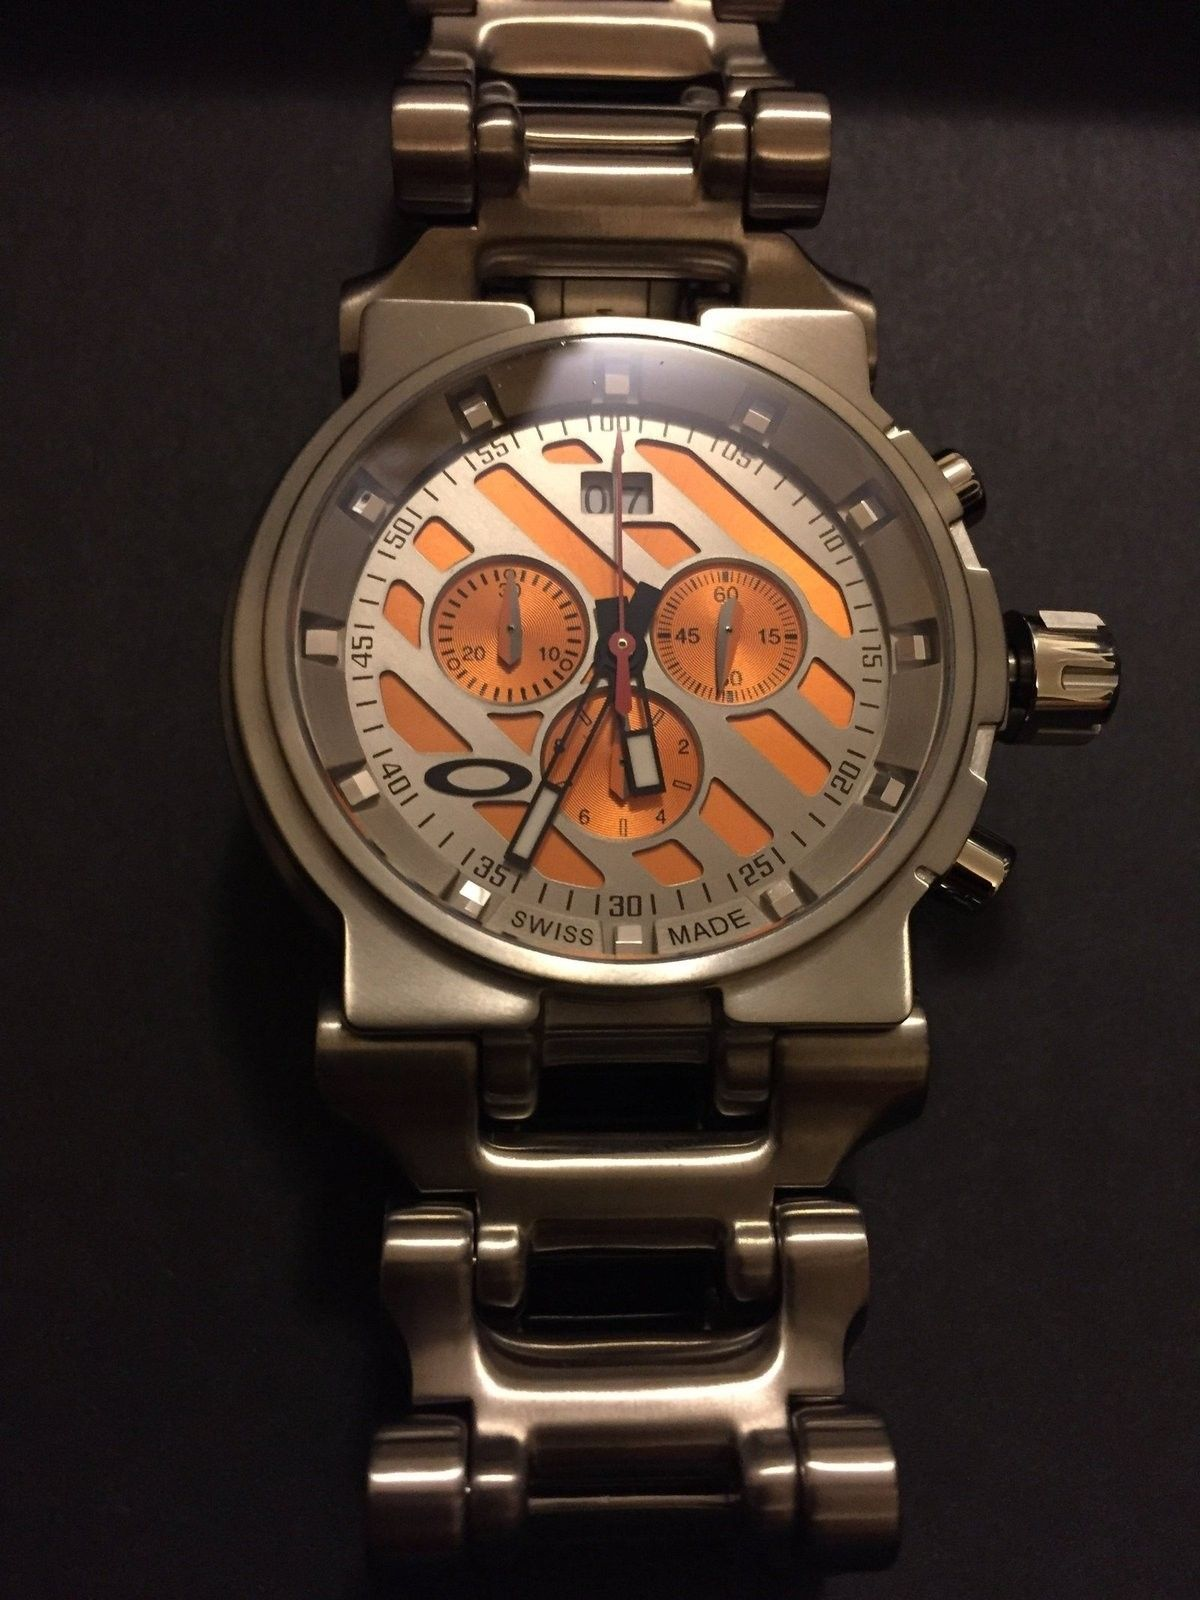 BNIB hollow point orange dial priced to sell ***SOLD - image.jpg